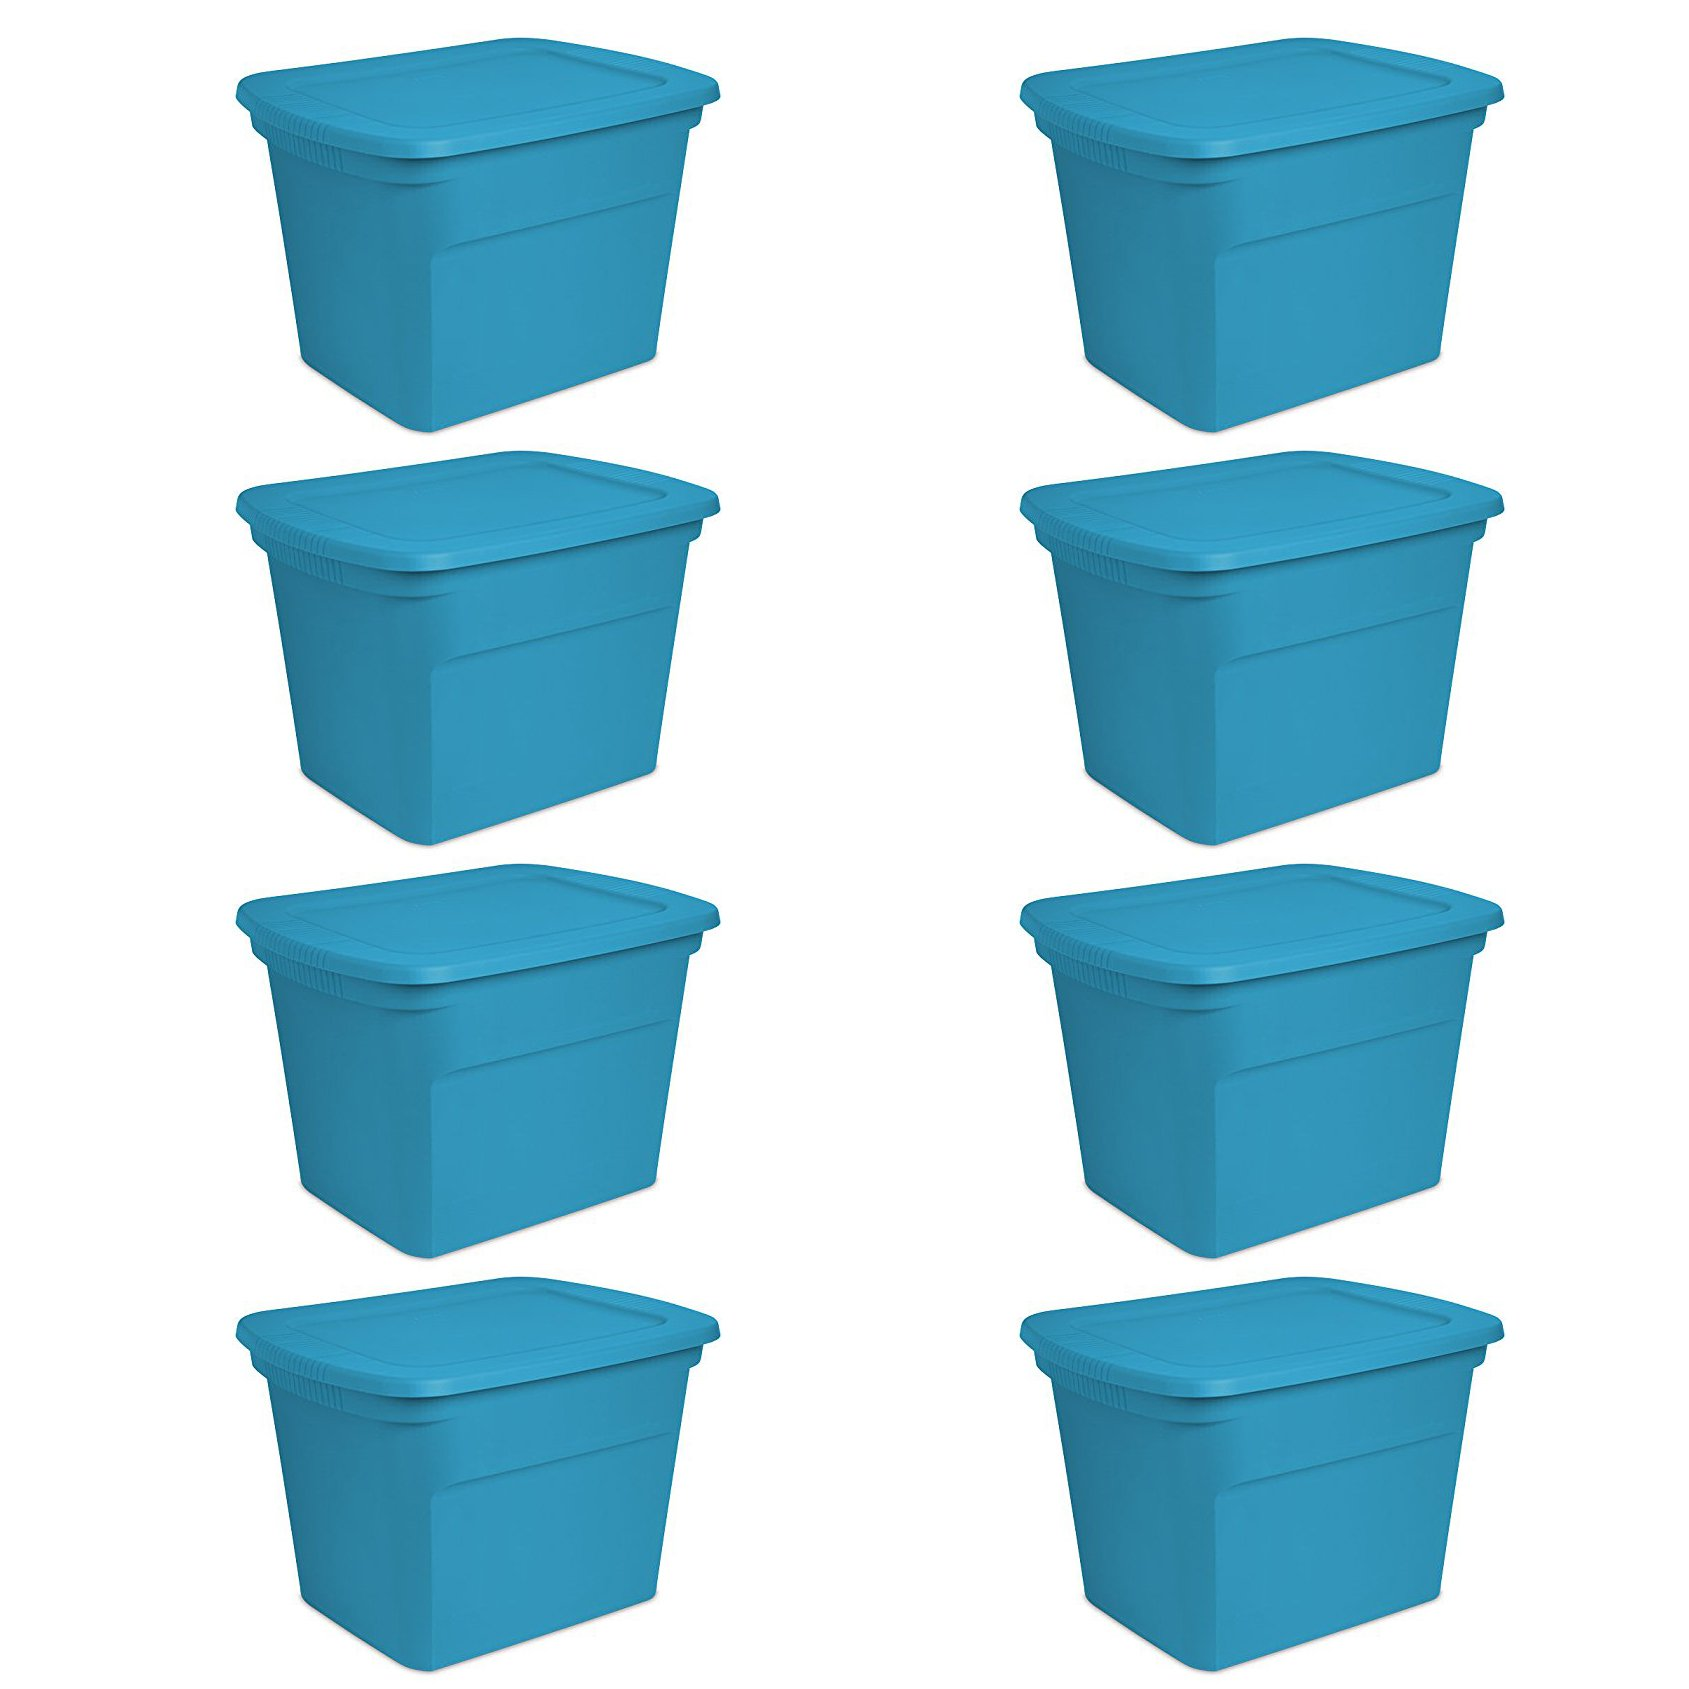 Sterilite 18 Gallon Plastic Storage Tote, Blue Aquarium (8 Pack) | 17314308